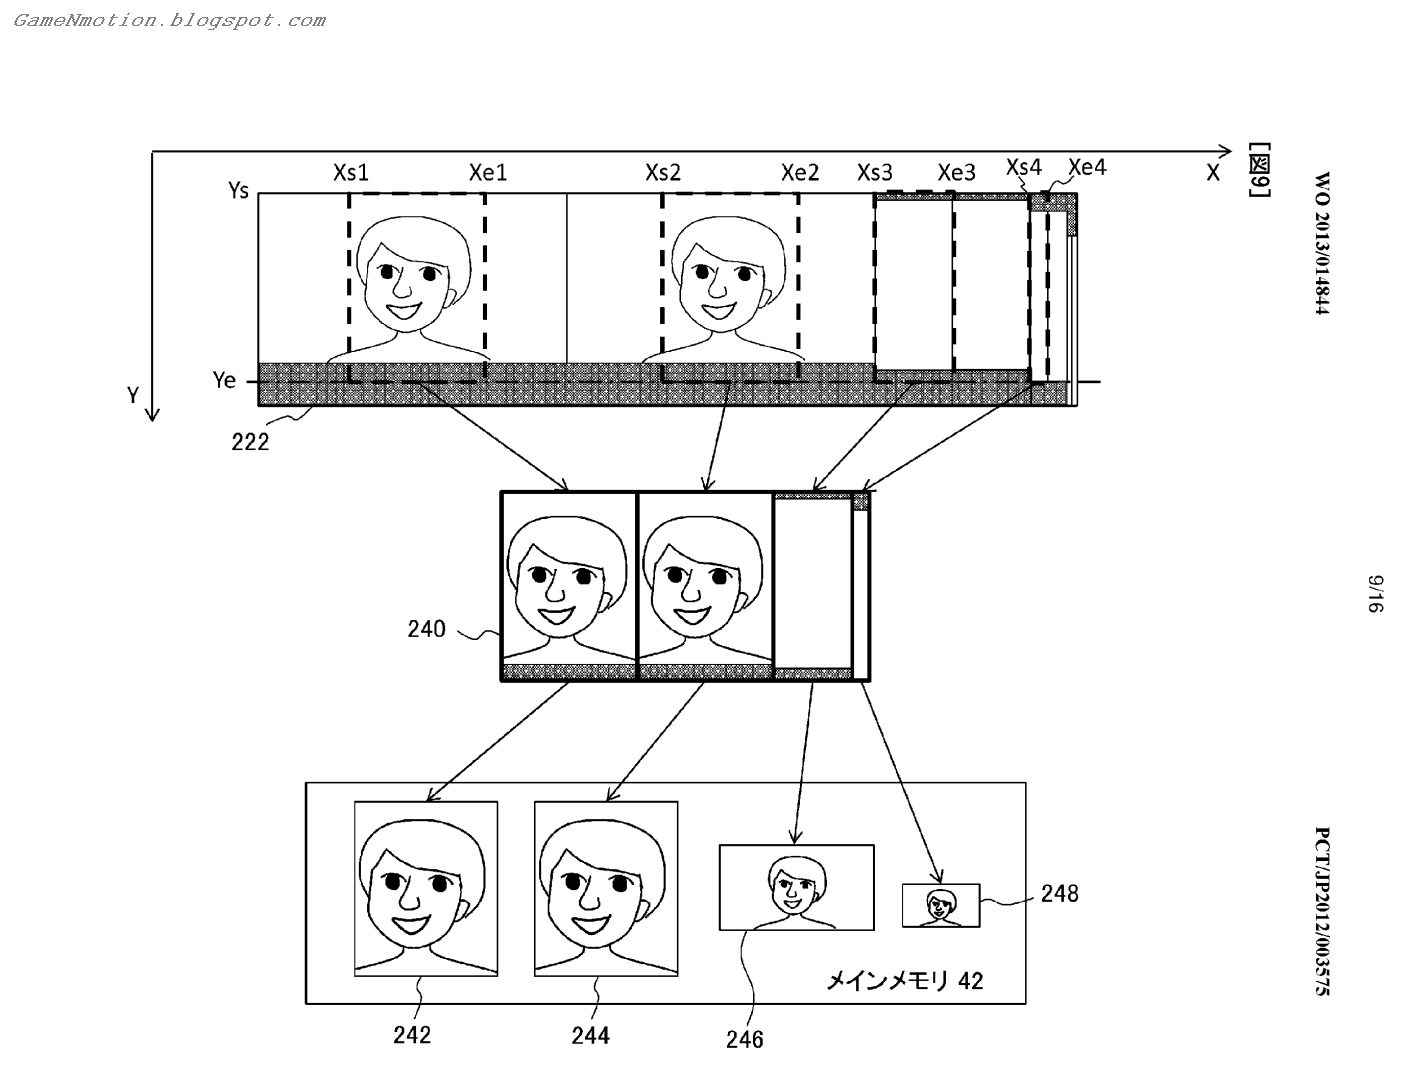 Game N Motion Ps4 Dual Camera Playstation Eye Patent In